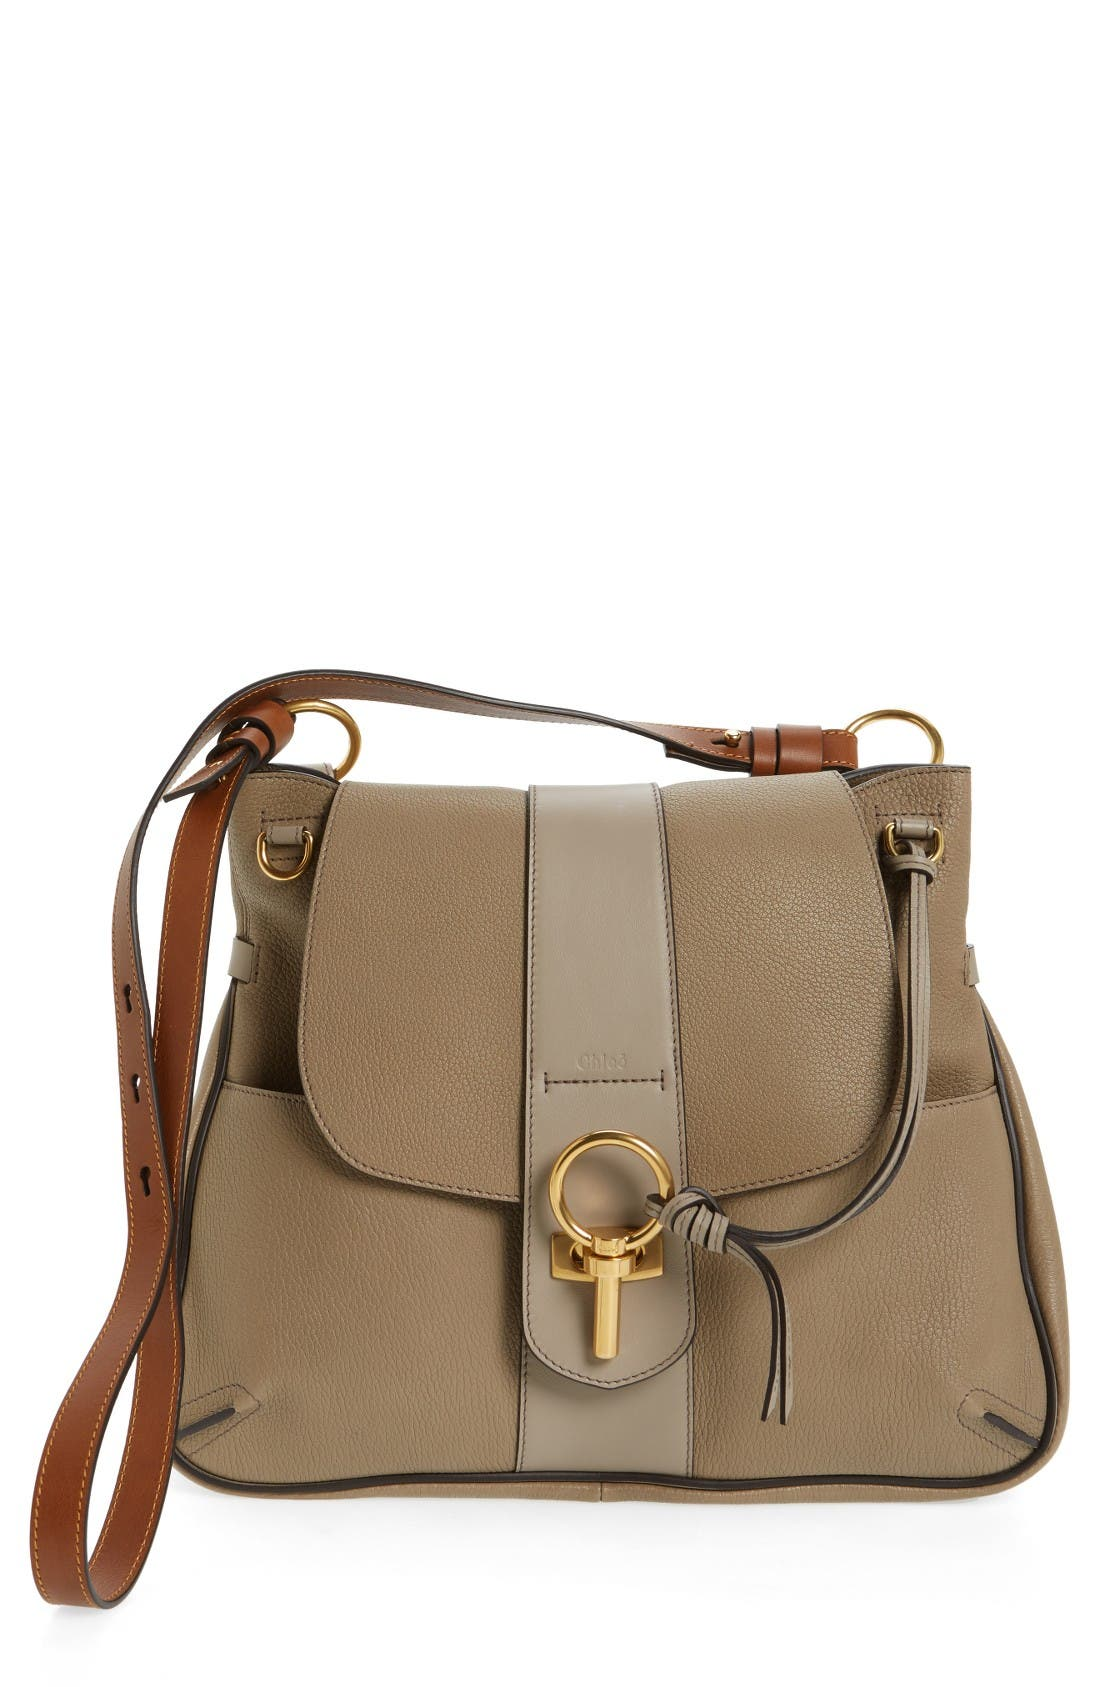 Alternate Image 1 Selected - Chloé Medium Lexa Leather Shoulder Bag